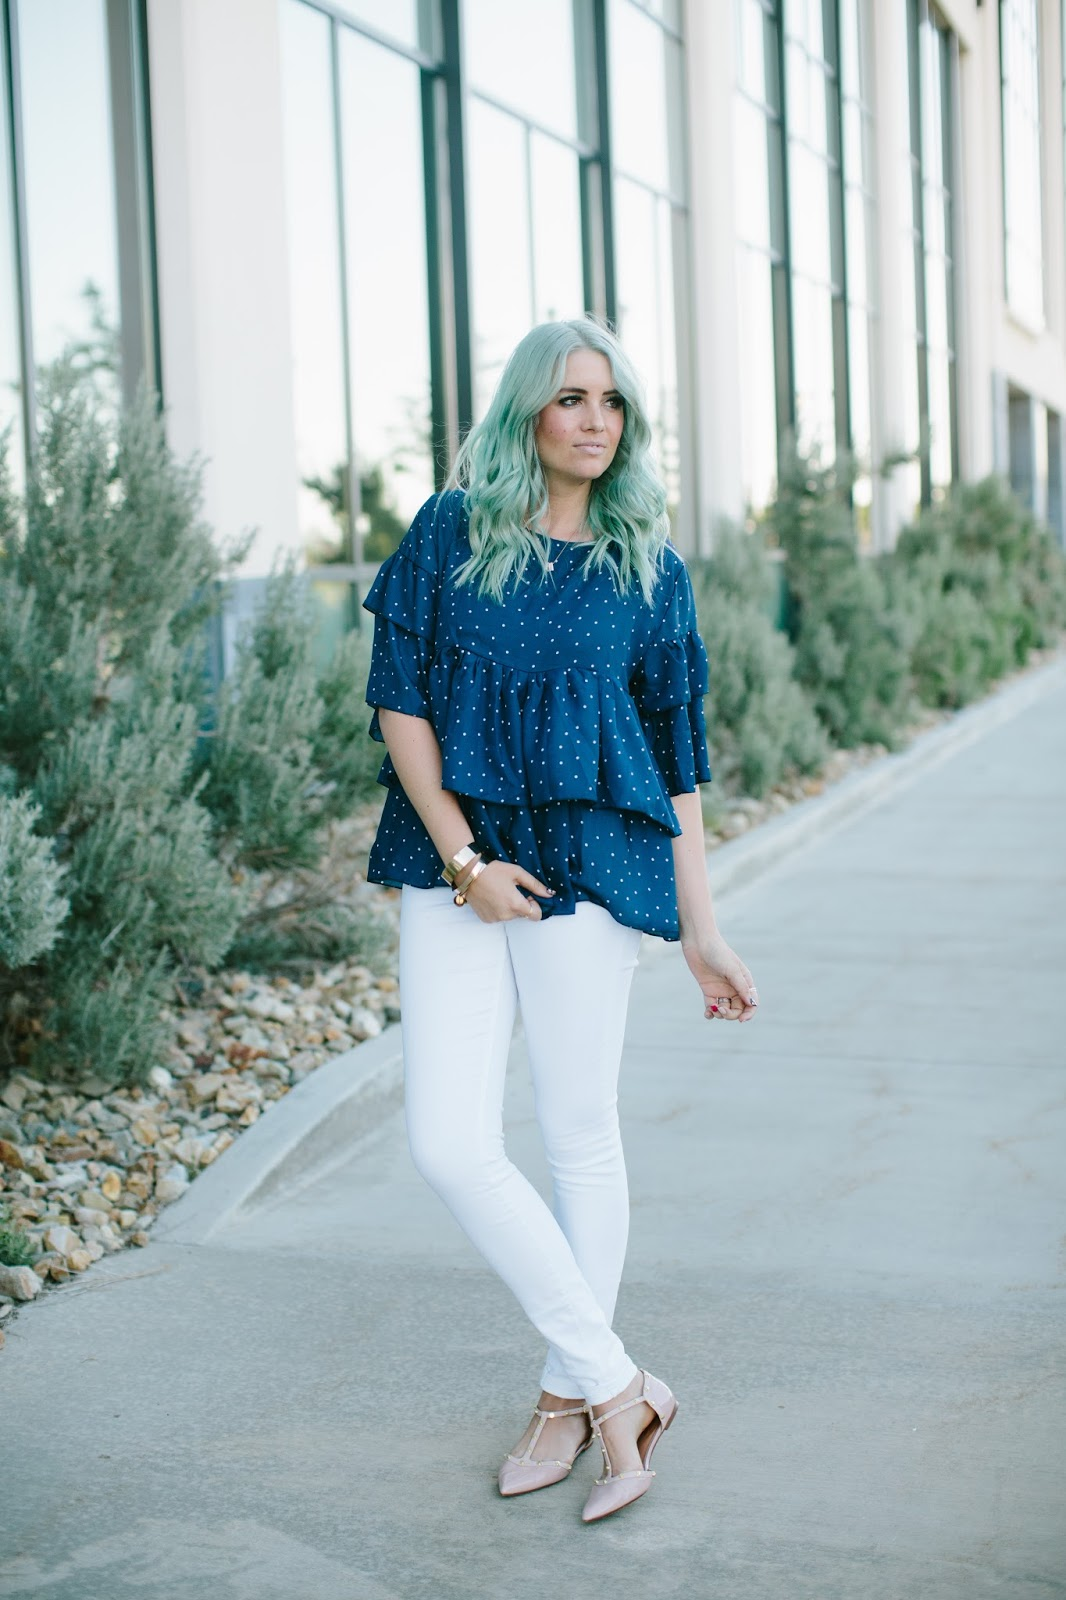 Ruffle Shirt, Polka Dot Shirt, White Jeans